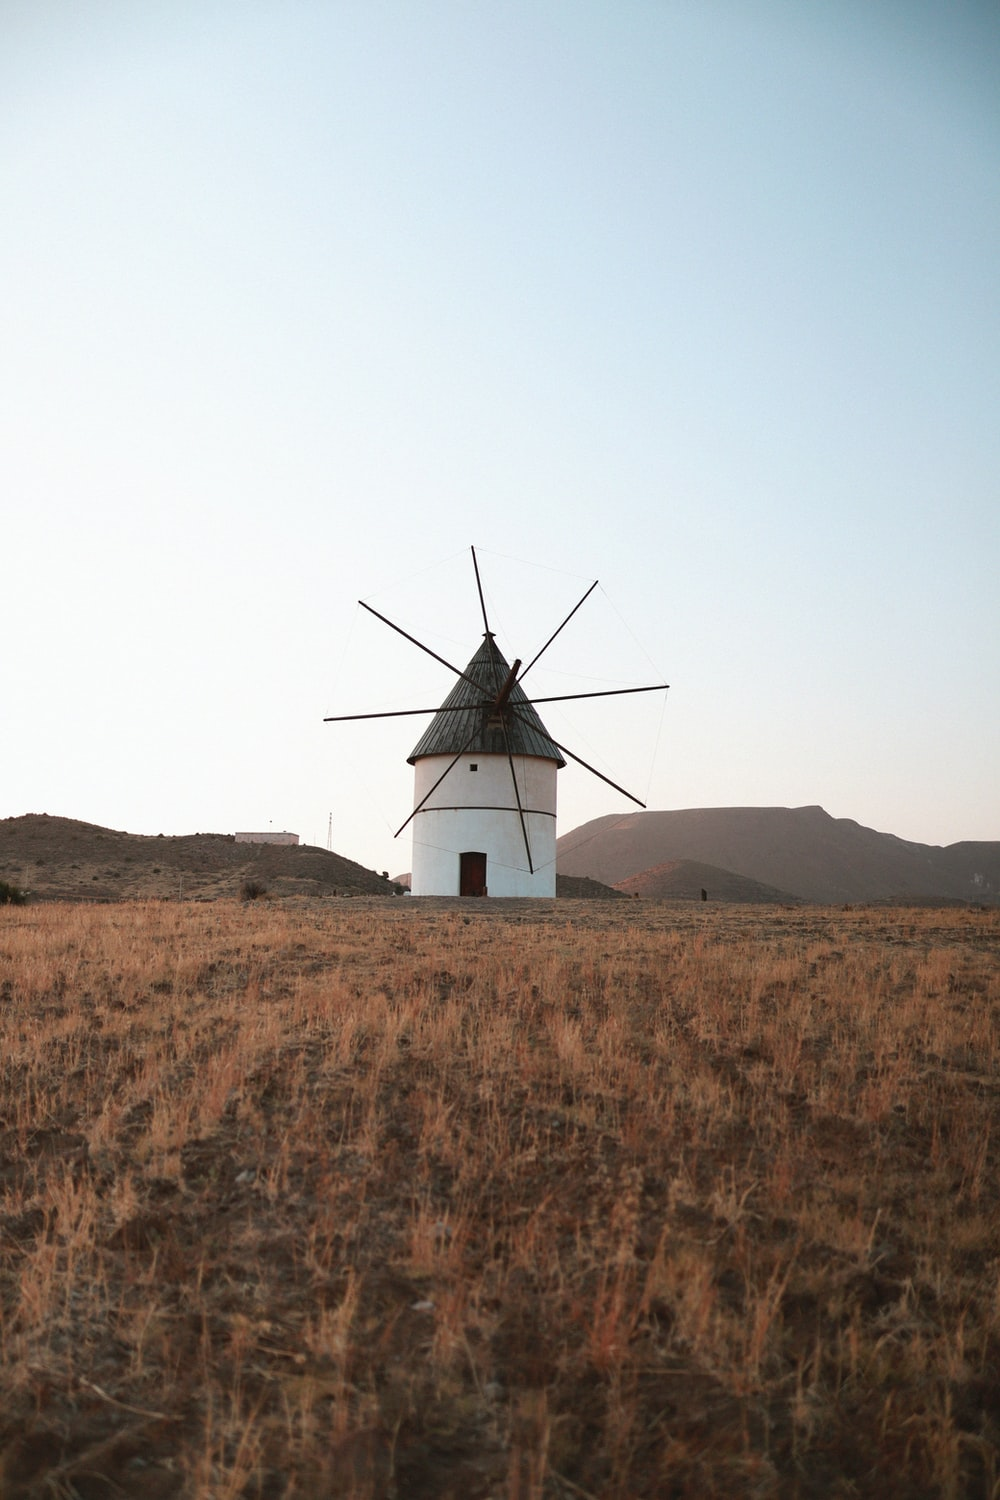 white and black windmill on brown field under white sky during daytime